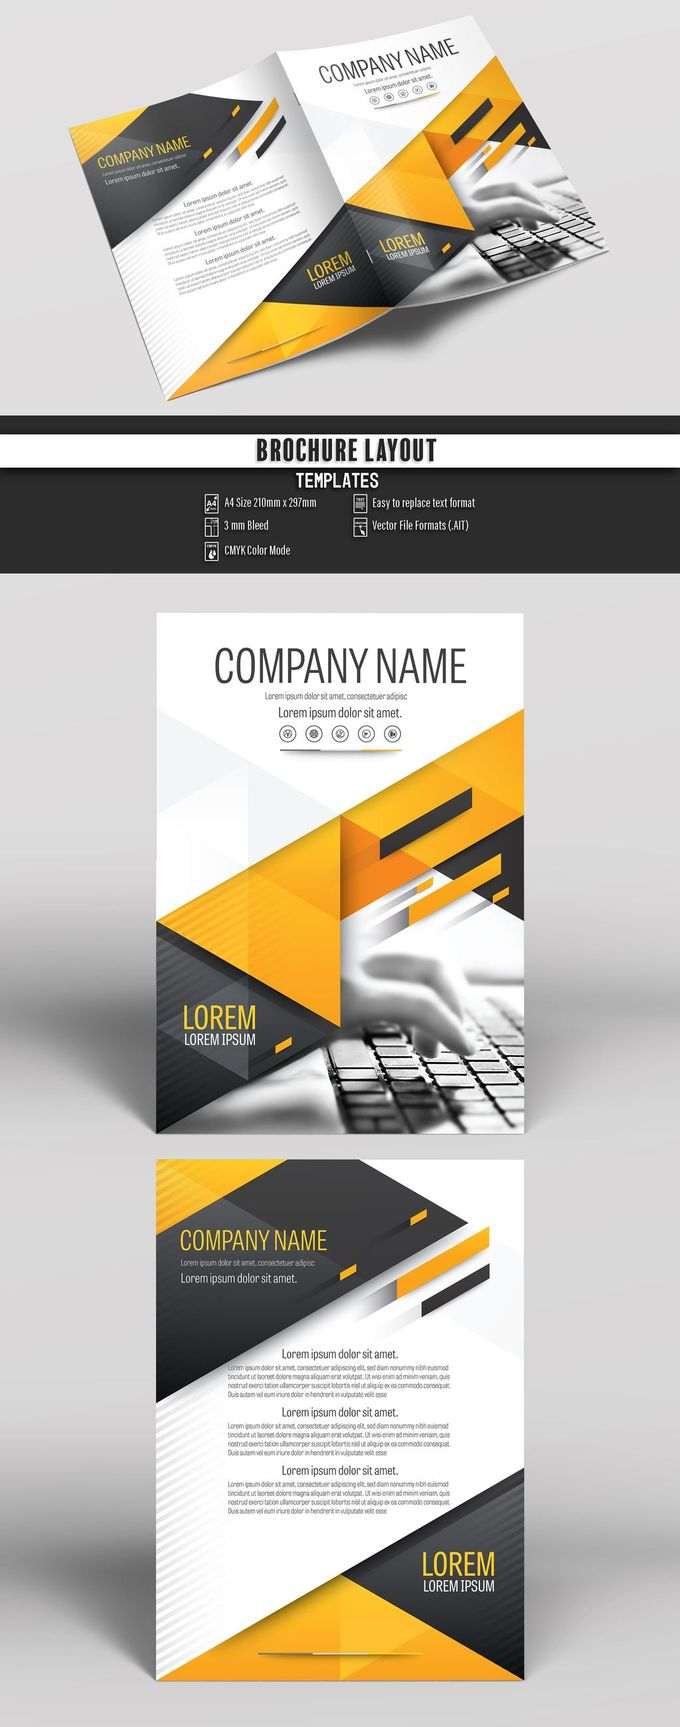 Brochure Cover Layout with Gray and Orange Accents 25. Buy this stock template and explore similar templates at Adobe Stock  #Brochure #Business #Proposal #Booklet #Flyer #Template #Design #Layout #Cover #Book #Booklet #A4 #Annual #Report| Brochure template | Brochure design template | Flyers | Template | Brochures | Flyer Background | Background design | Business Proposal | Proposal Design | Booklet | Professional | Professional - Proposal - Brochure - Template